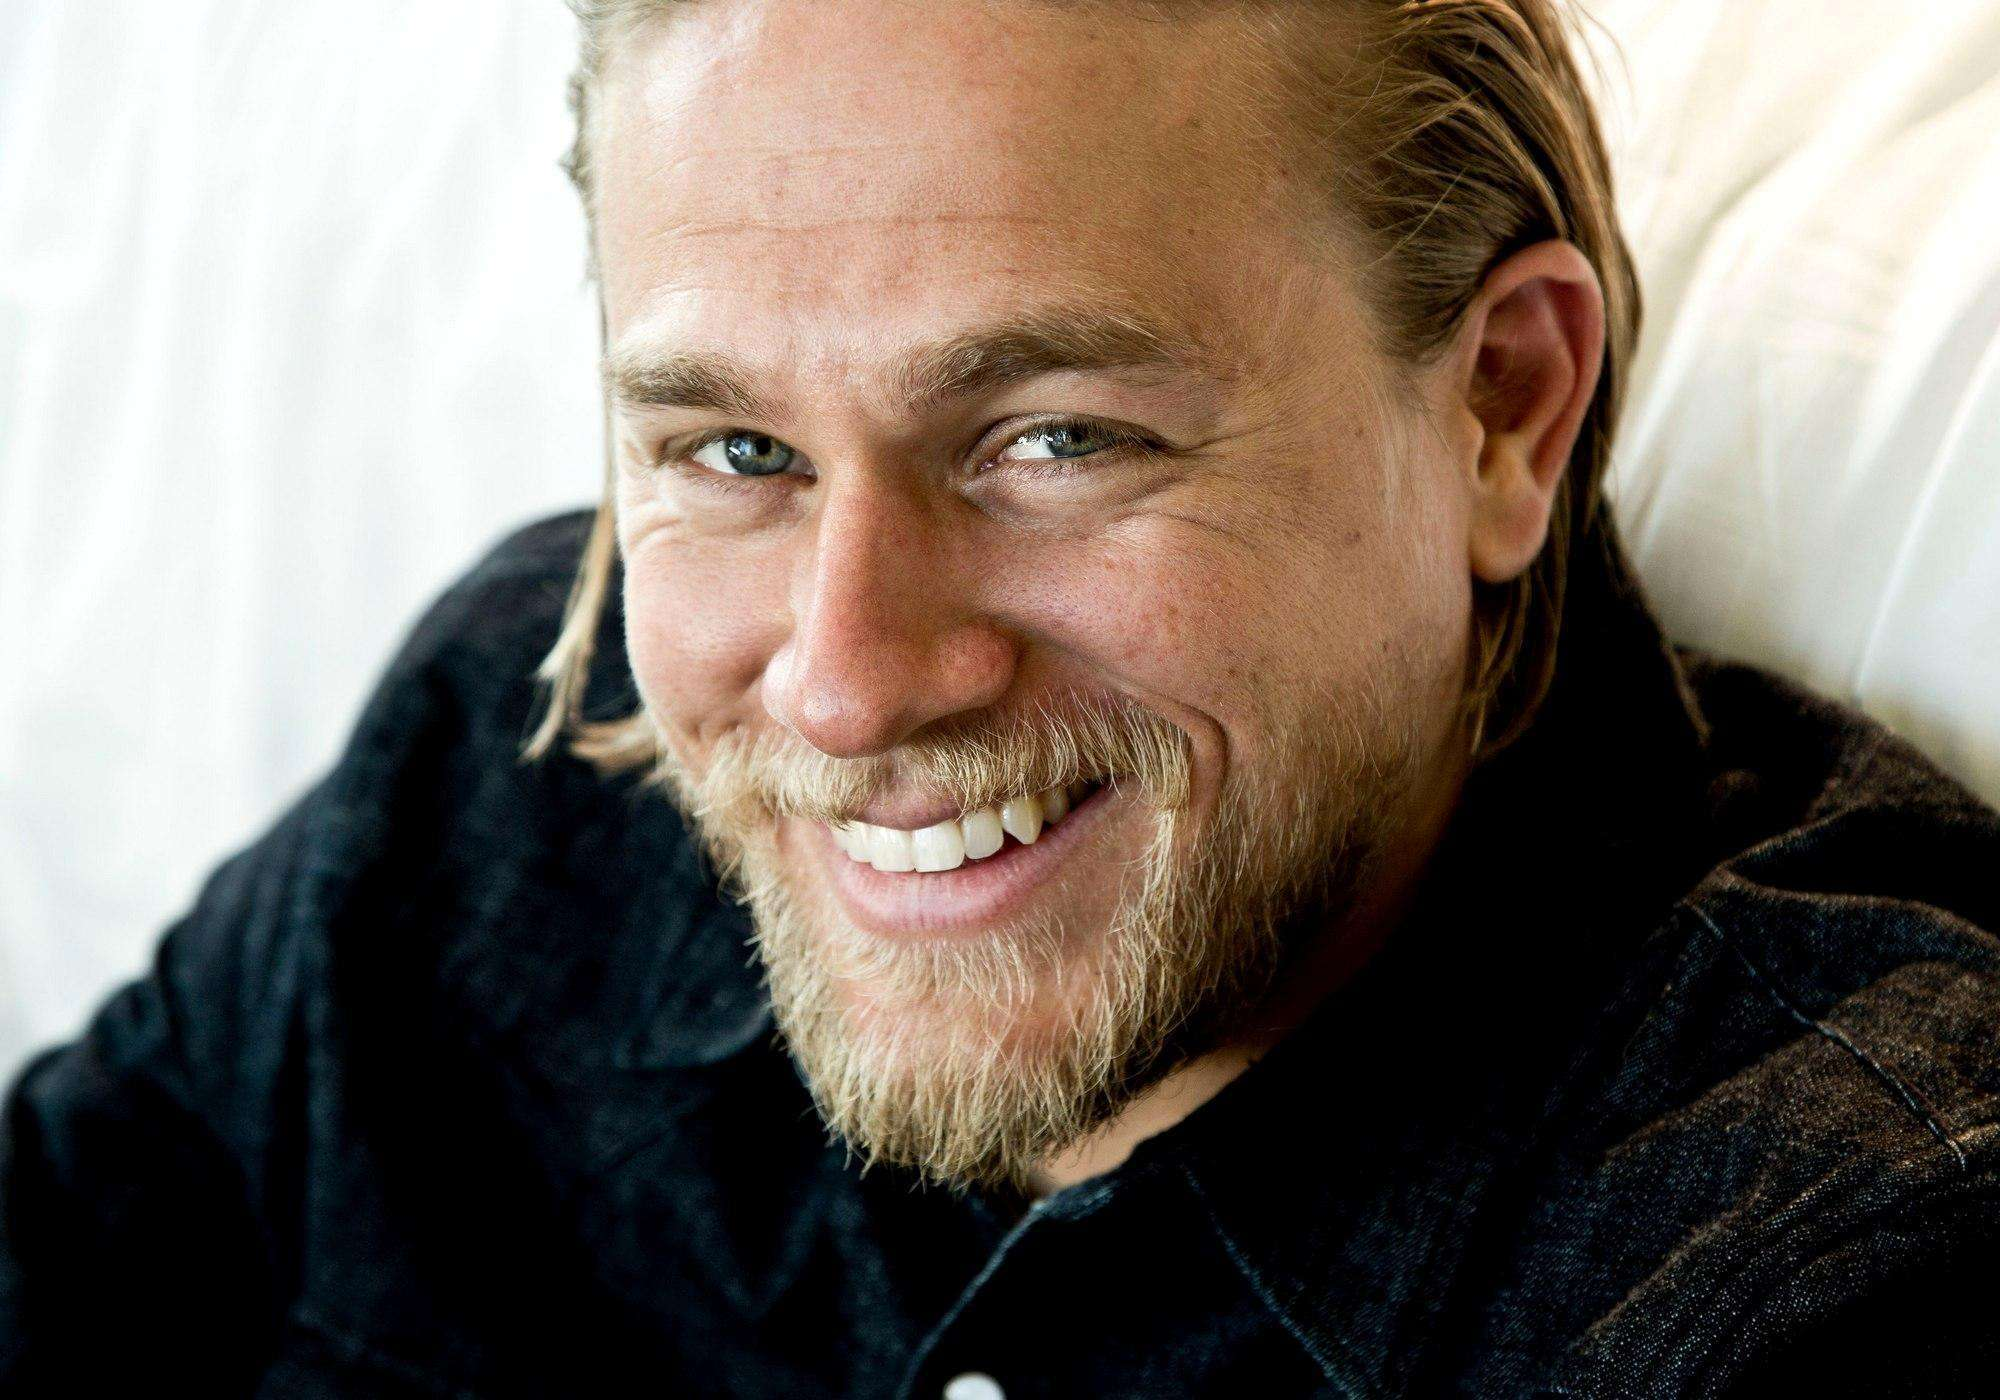 Charlie Hunnam Wallpapers High Resolution and Quality Download 2000x1400